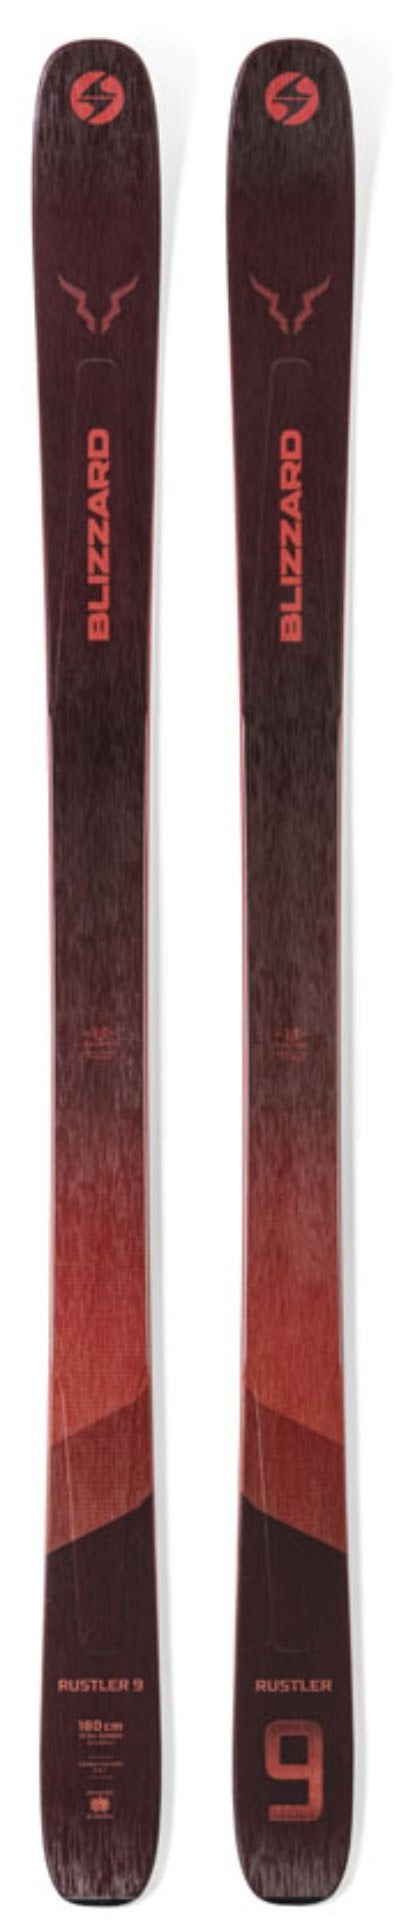 2021 Blizzard Rustler 9 snow skis - ProSkiGuy your Hometown Ski Shop on the web